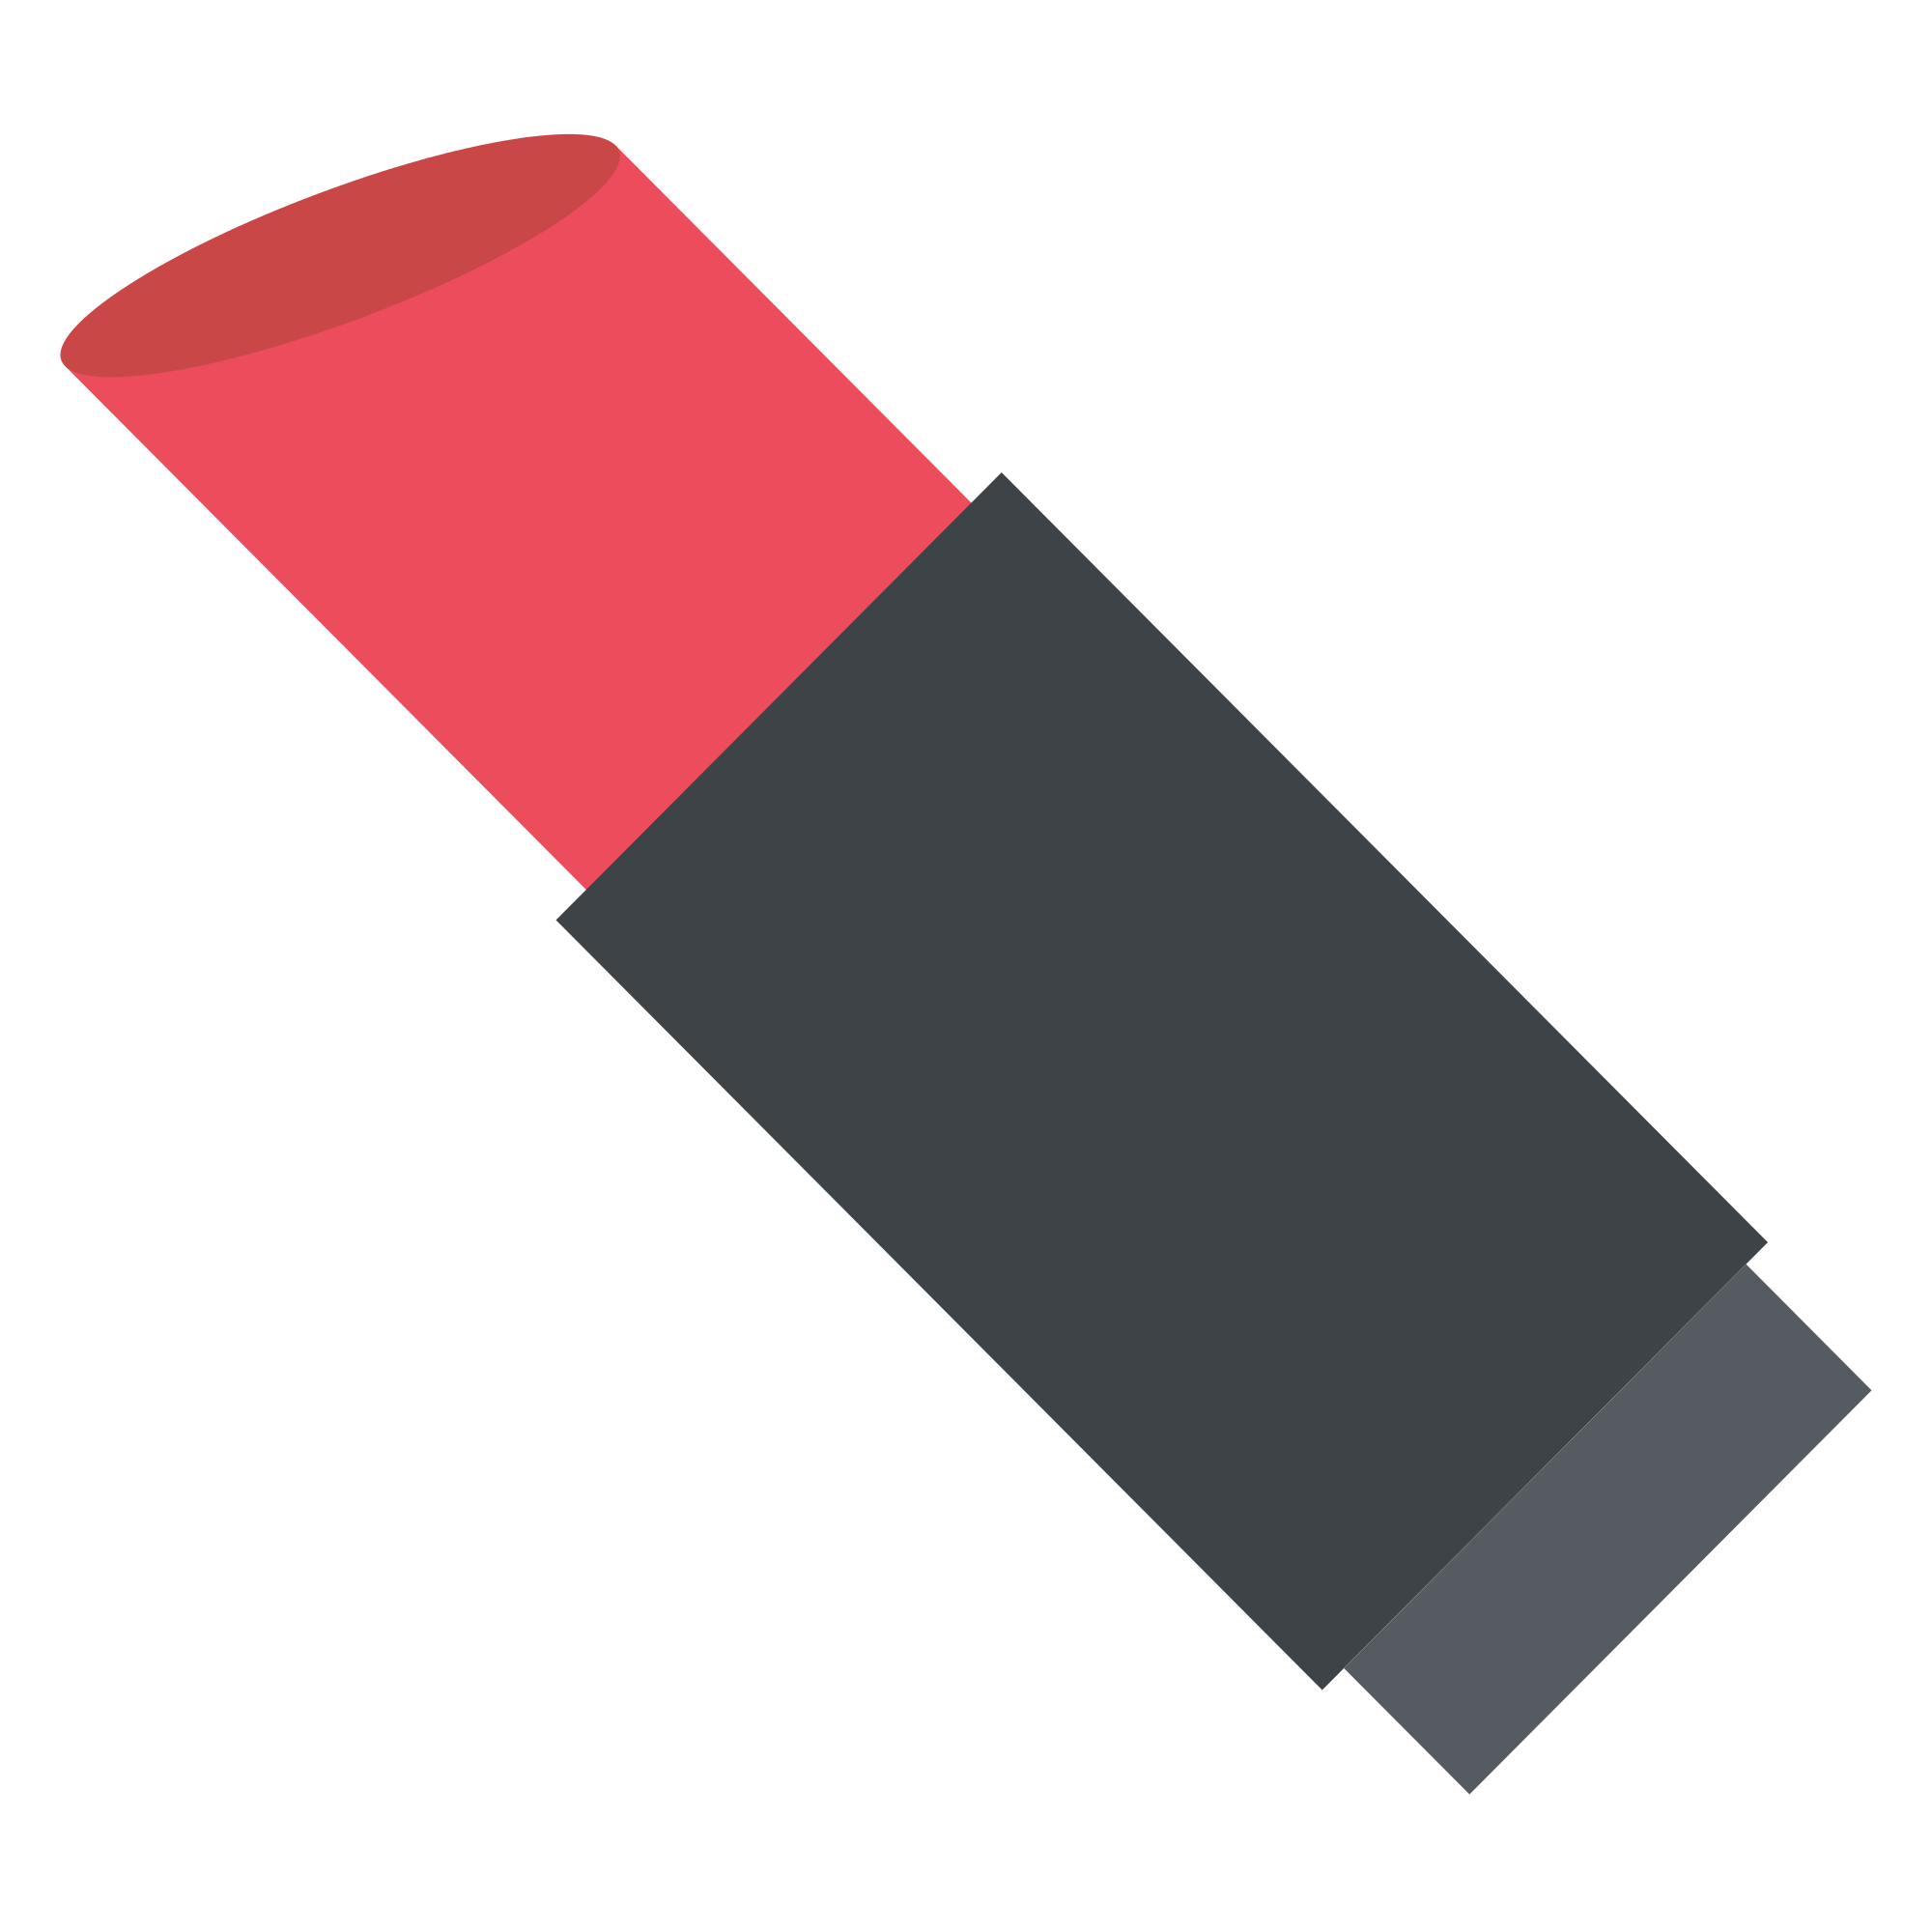 Lipstick svg #4, Download drawings